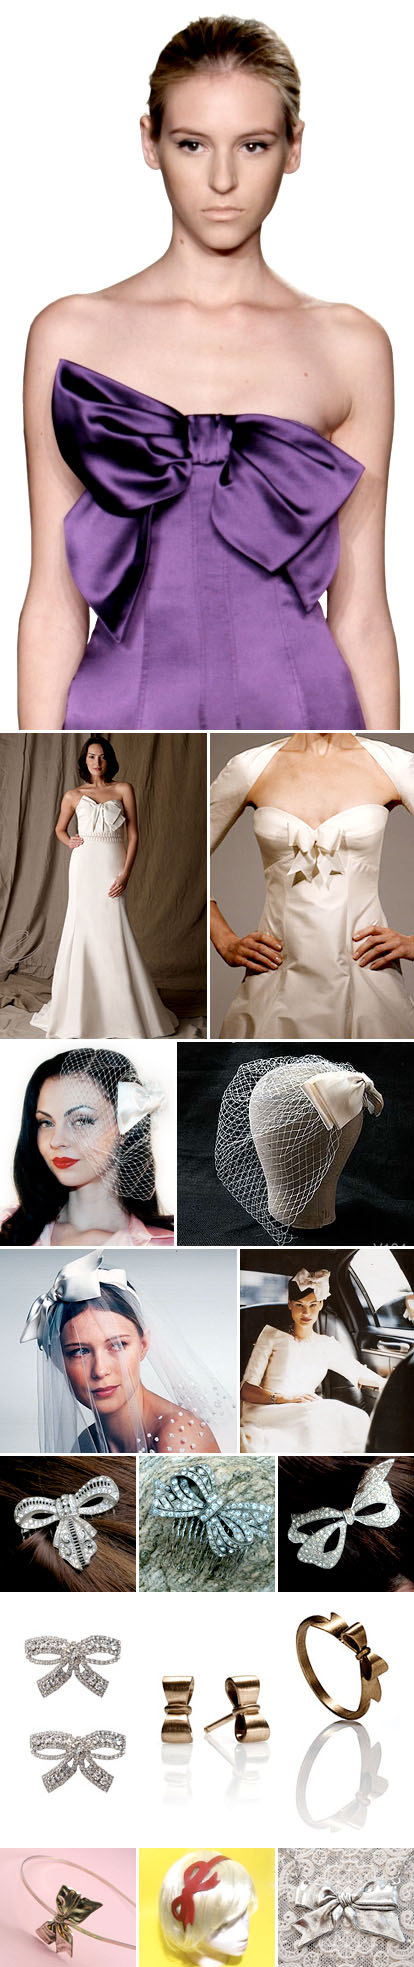 Bow and ribbon accented wedding dresses, veils, jewelry and accessories